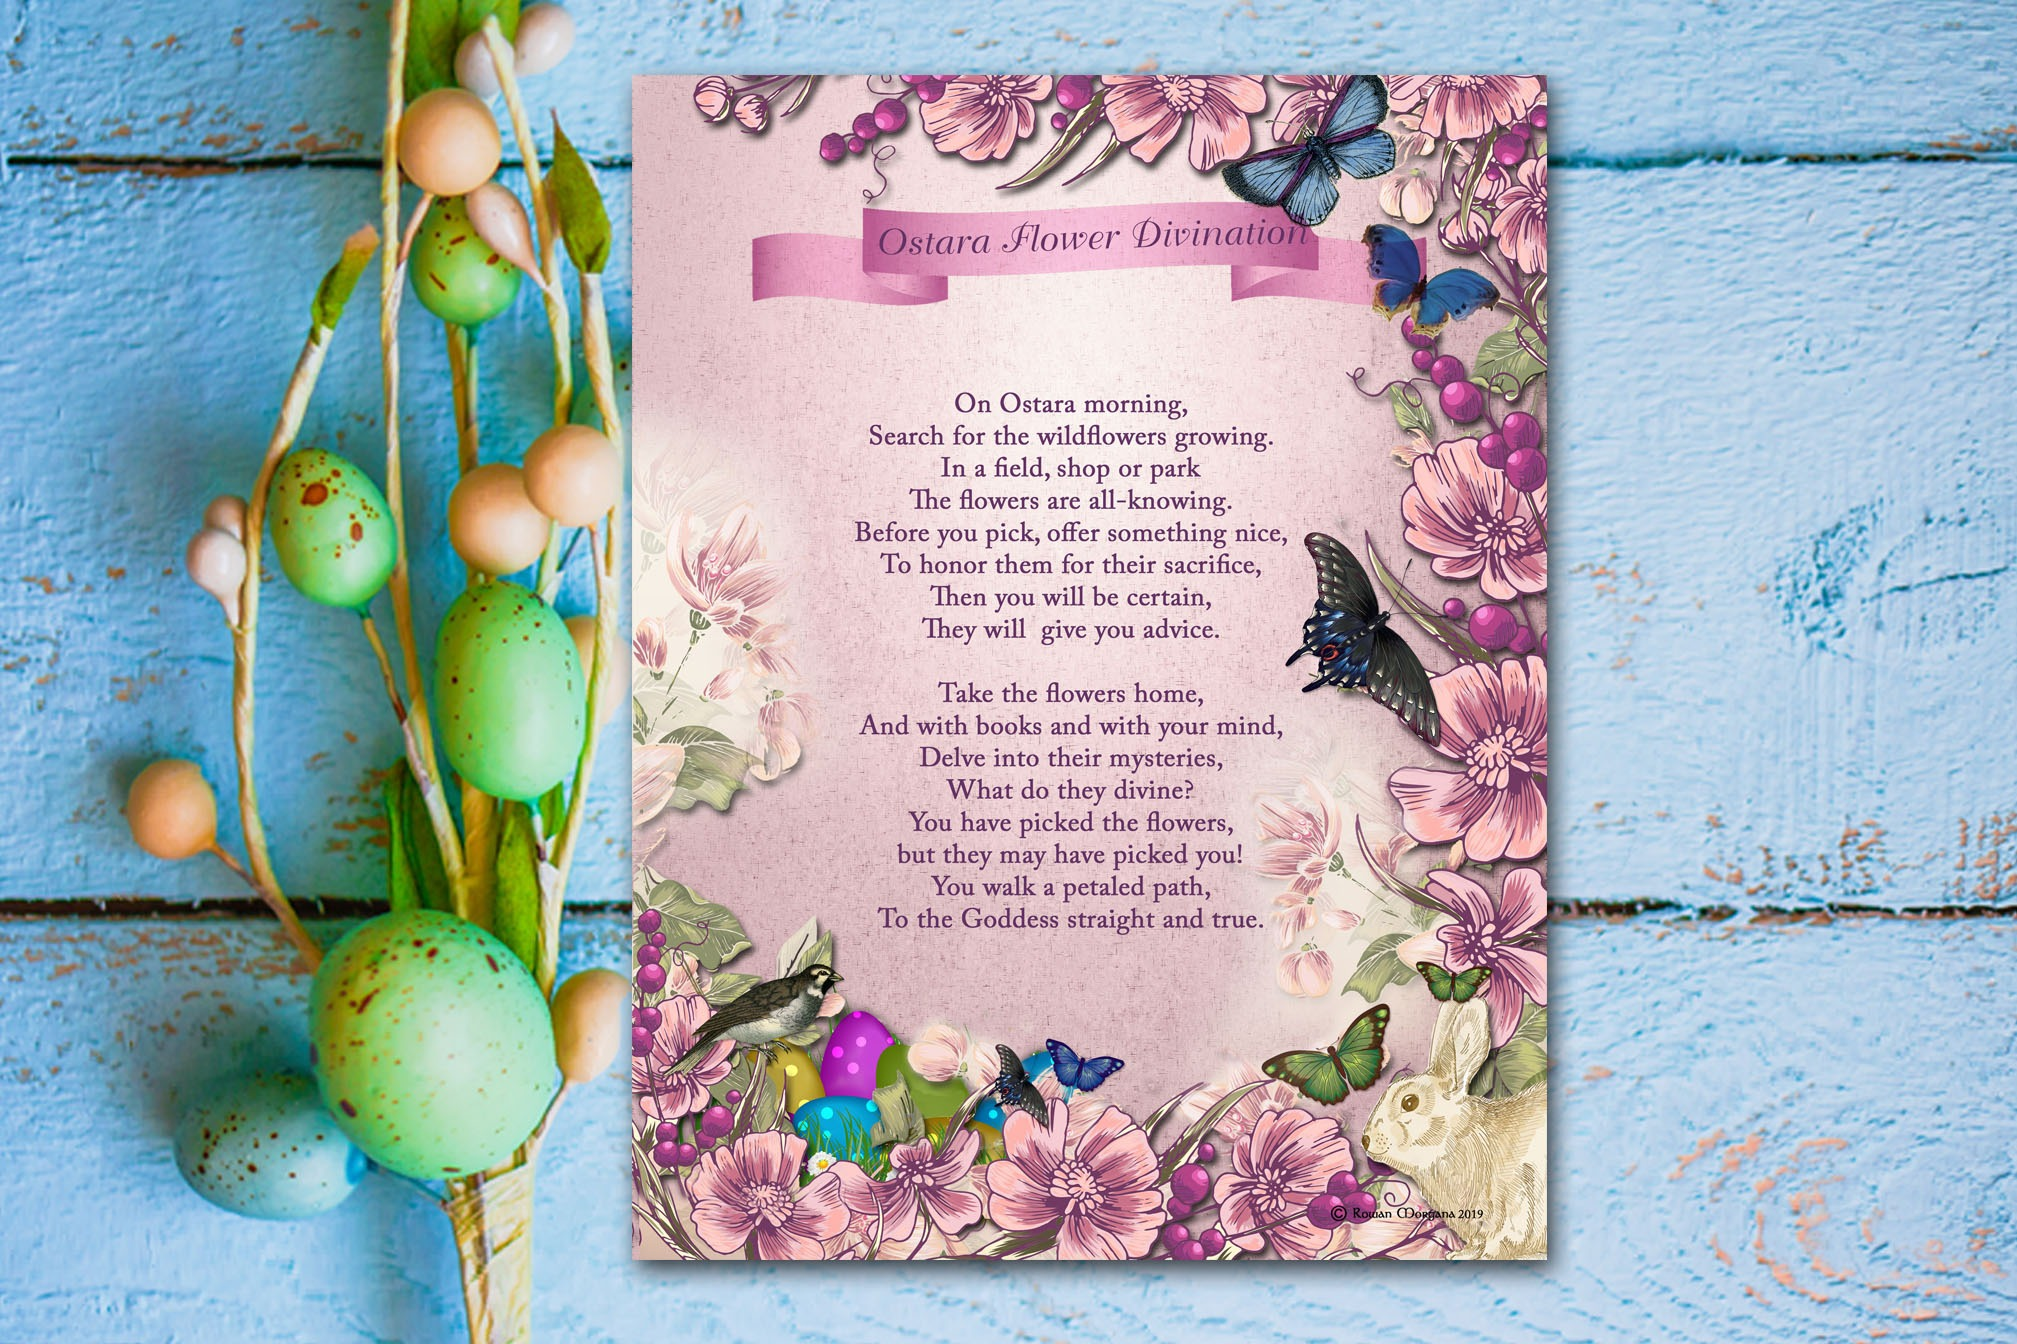 OSTARA FLOWER DIVINATION